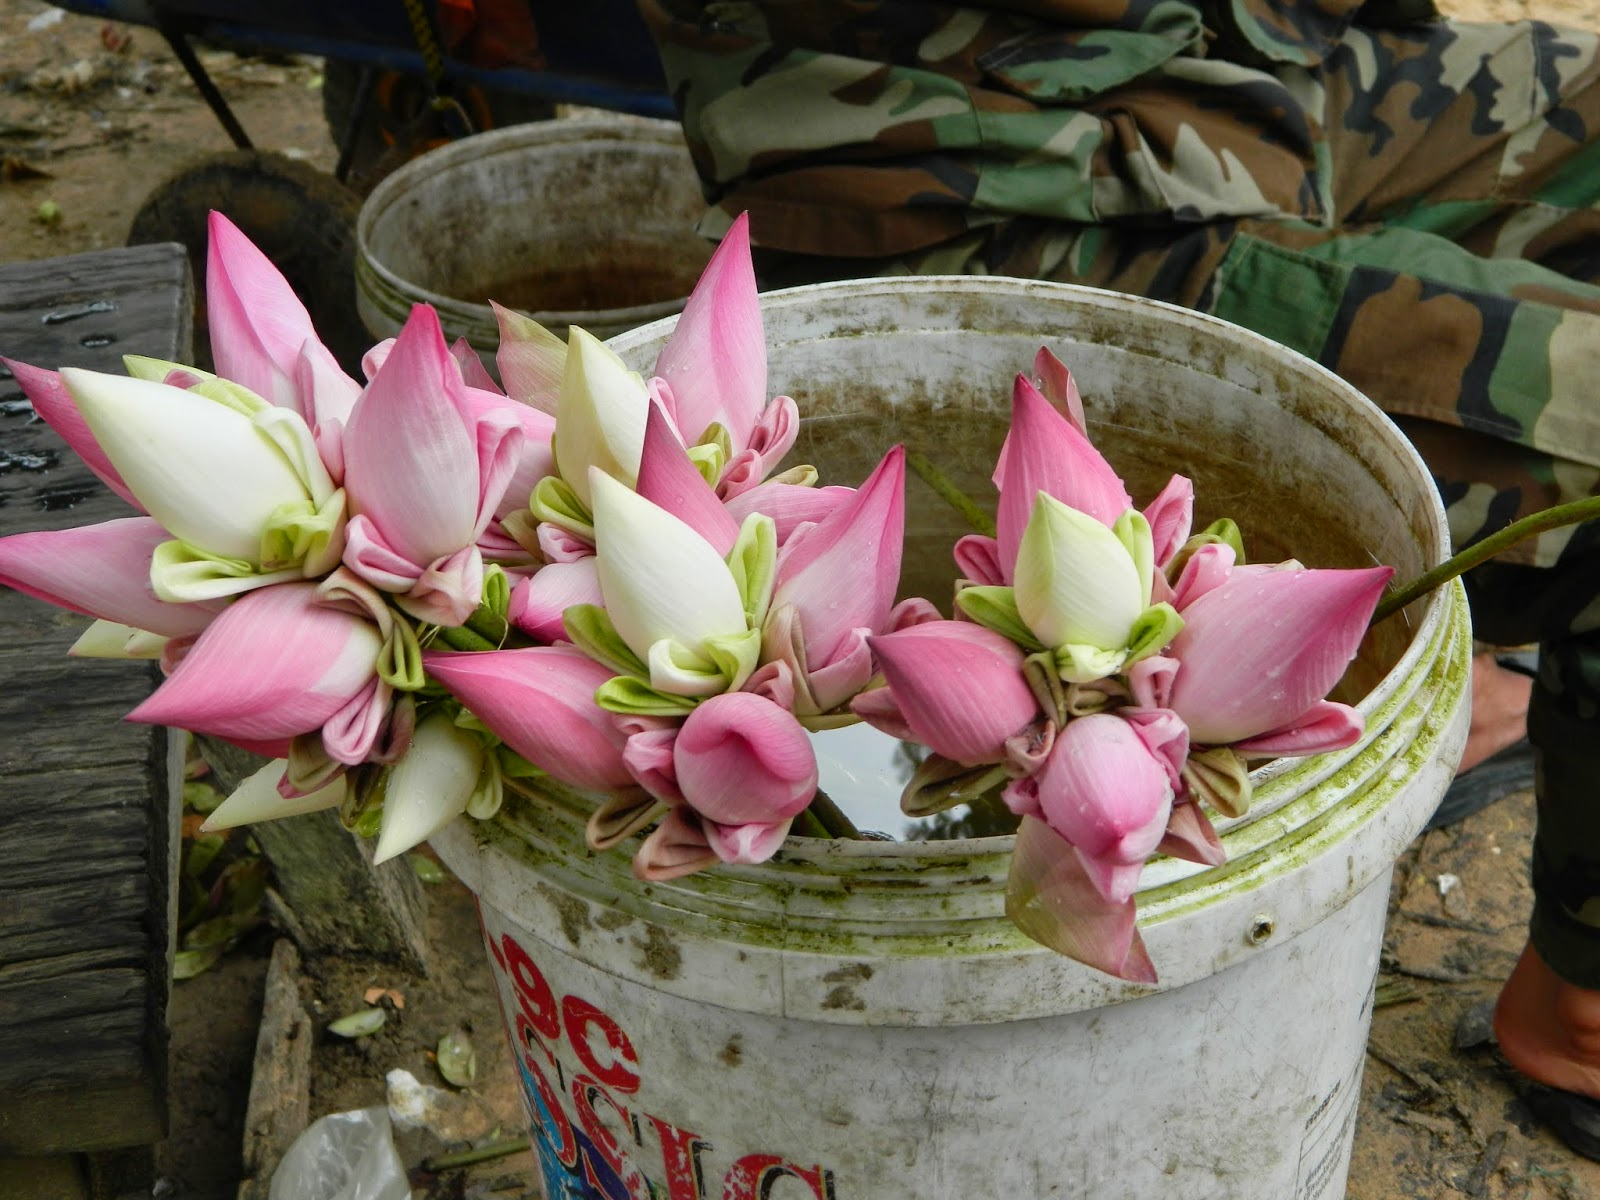 There is lotus all around in Cambodia. I am moving here.